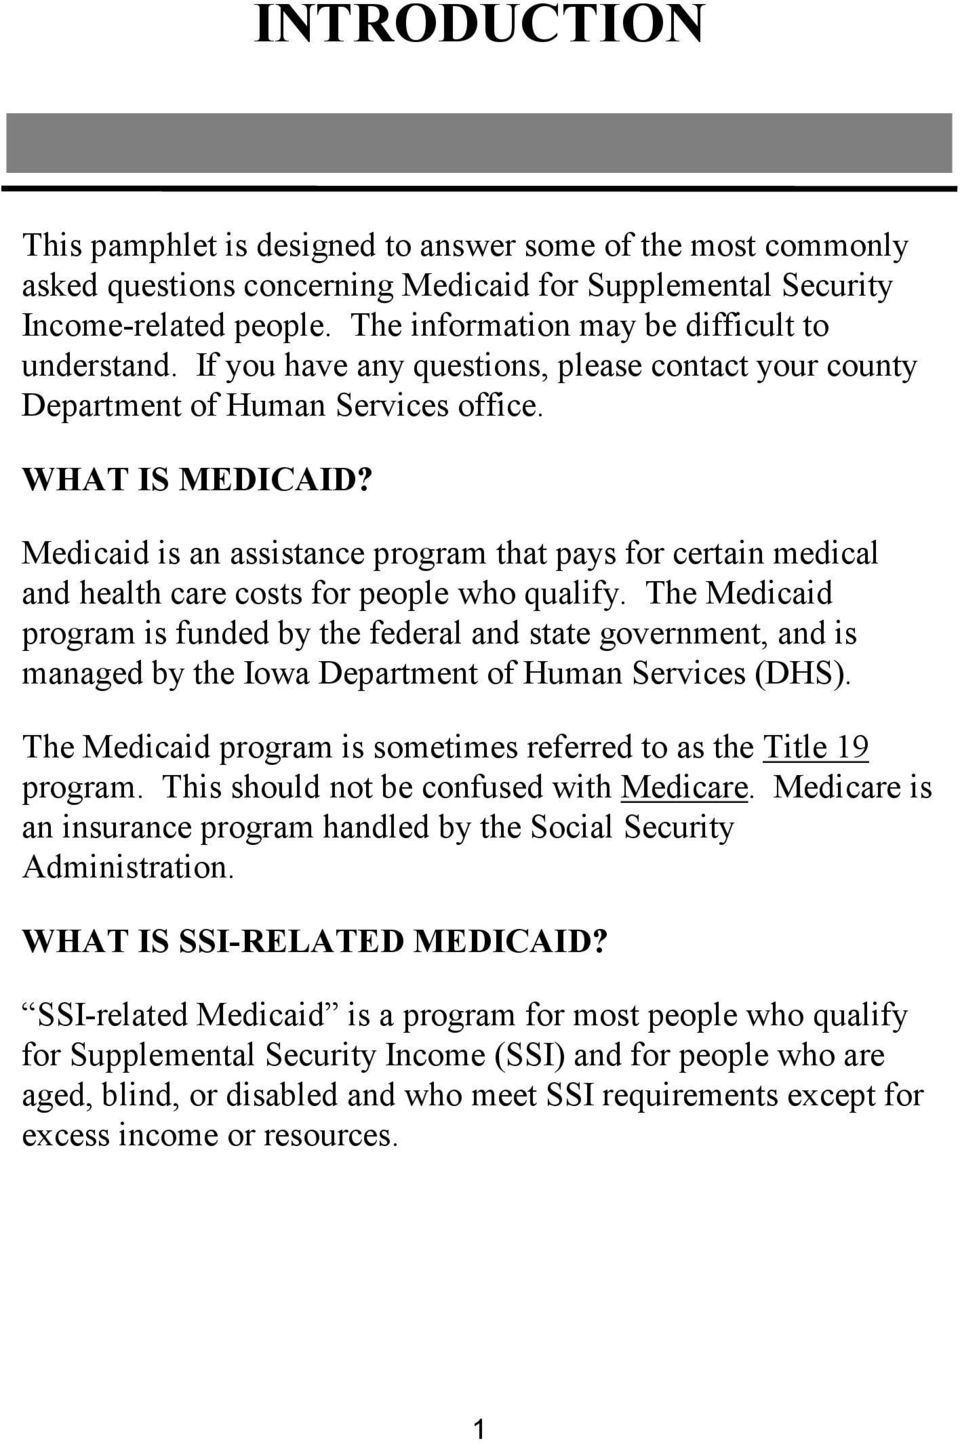 Medicaid is an assistance program that pays for certain medical and health care costs for people who qualify.